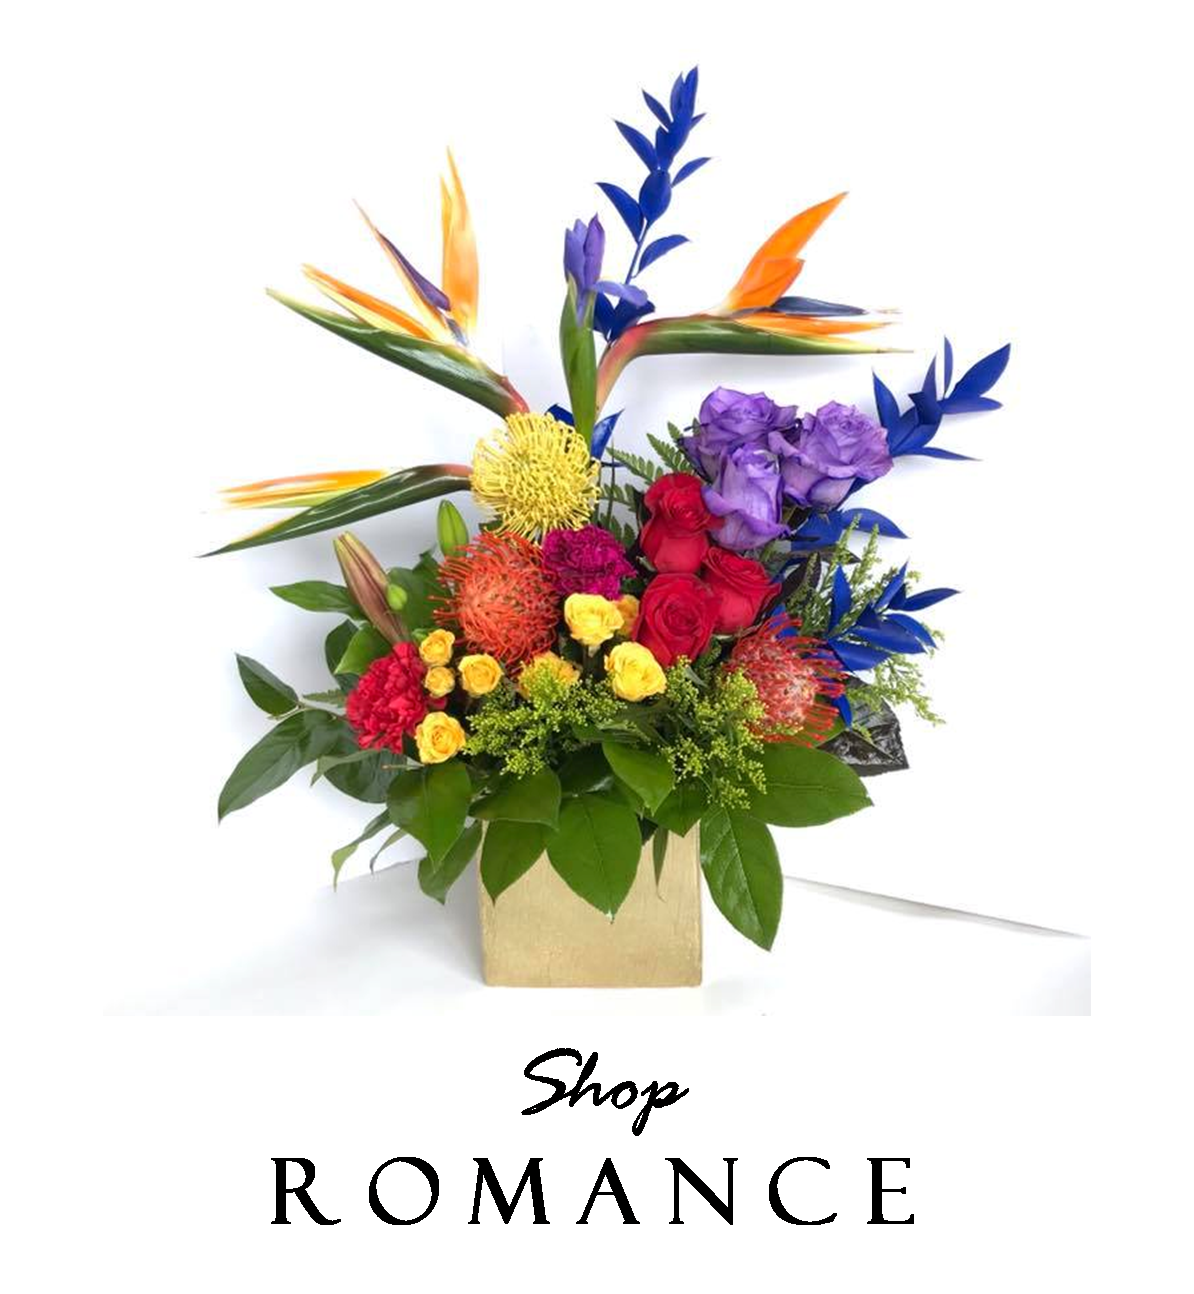 79912-we-make-el-paso-bloom-with-luxury-gifts-rose-boxes-angies-floral-designs-angies-floral-romance-designs-rose-ladders-el-paso-florist-79912-west-angies-flower.png